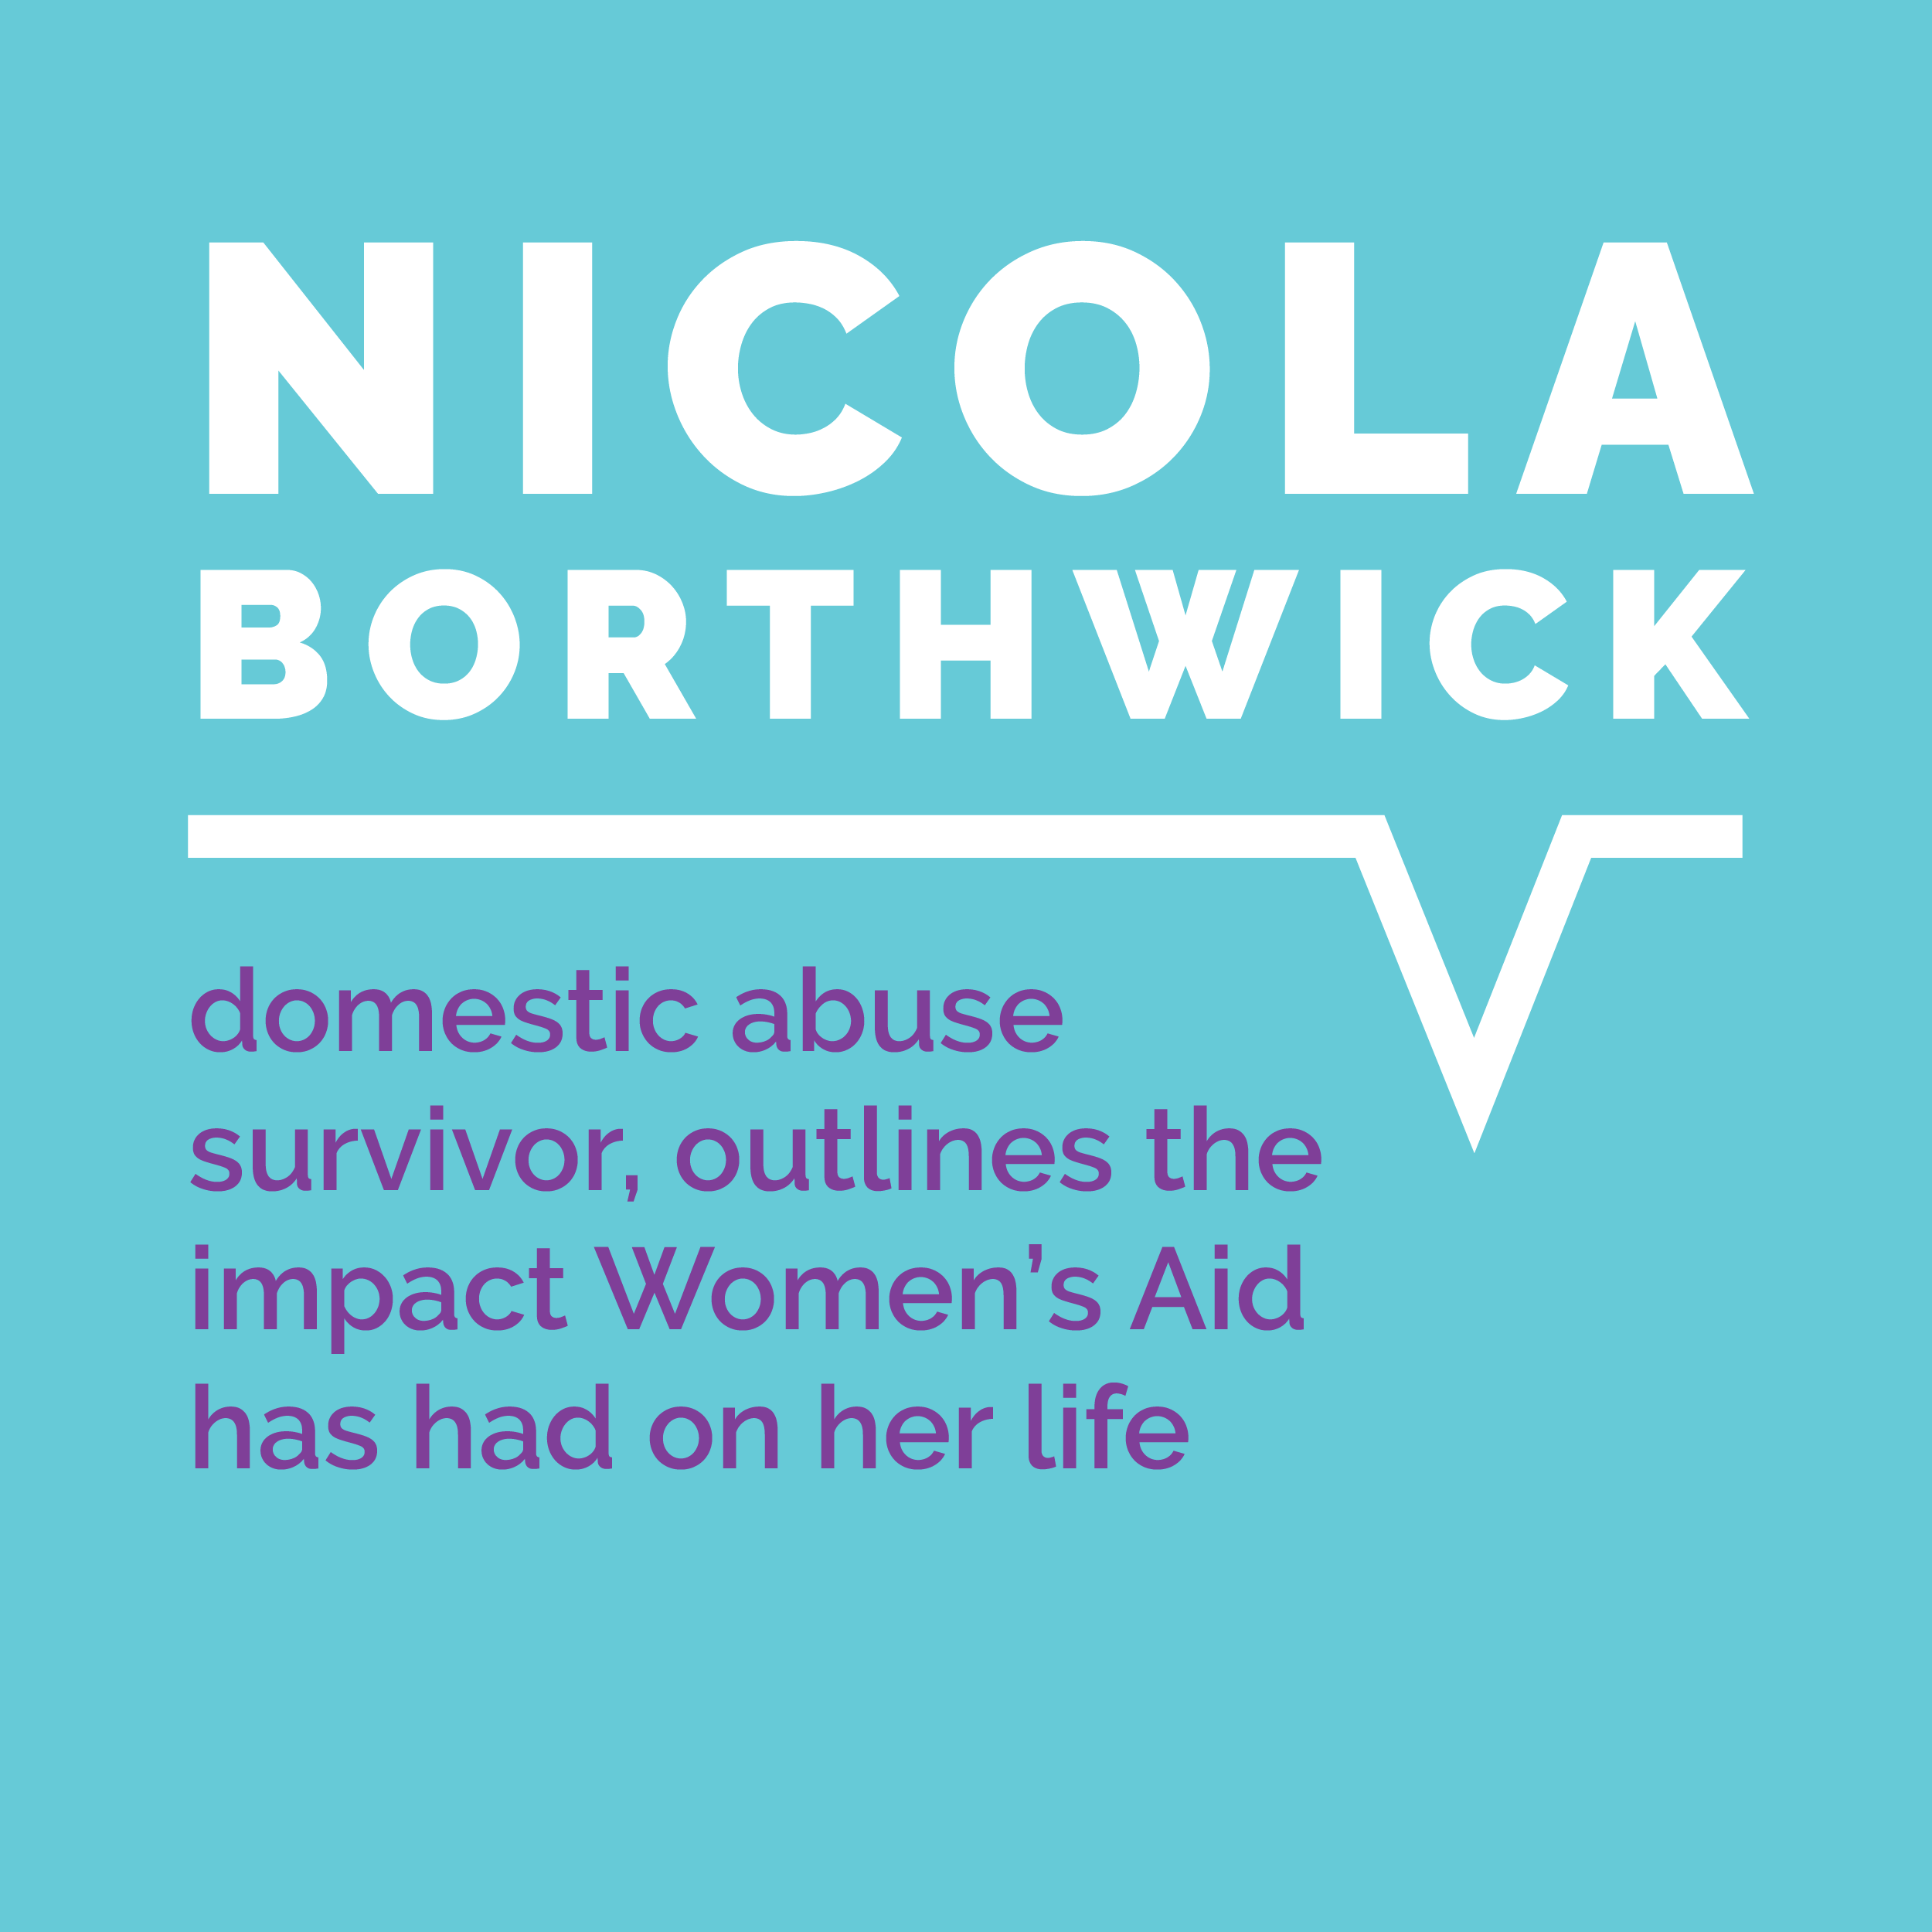 Nicola Borthwick, domestic abuse survivor, outlines the impact Women's Aid has had on her life